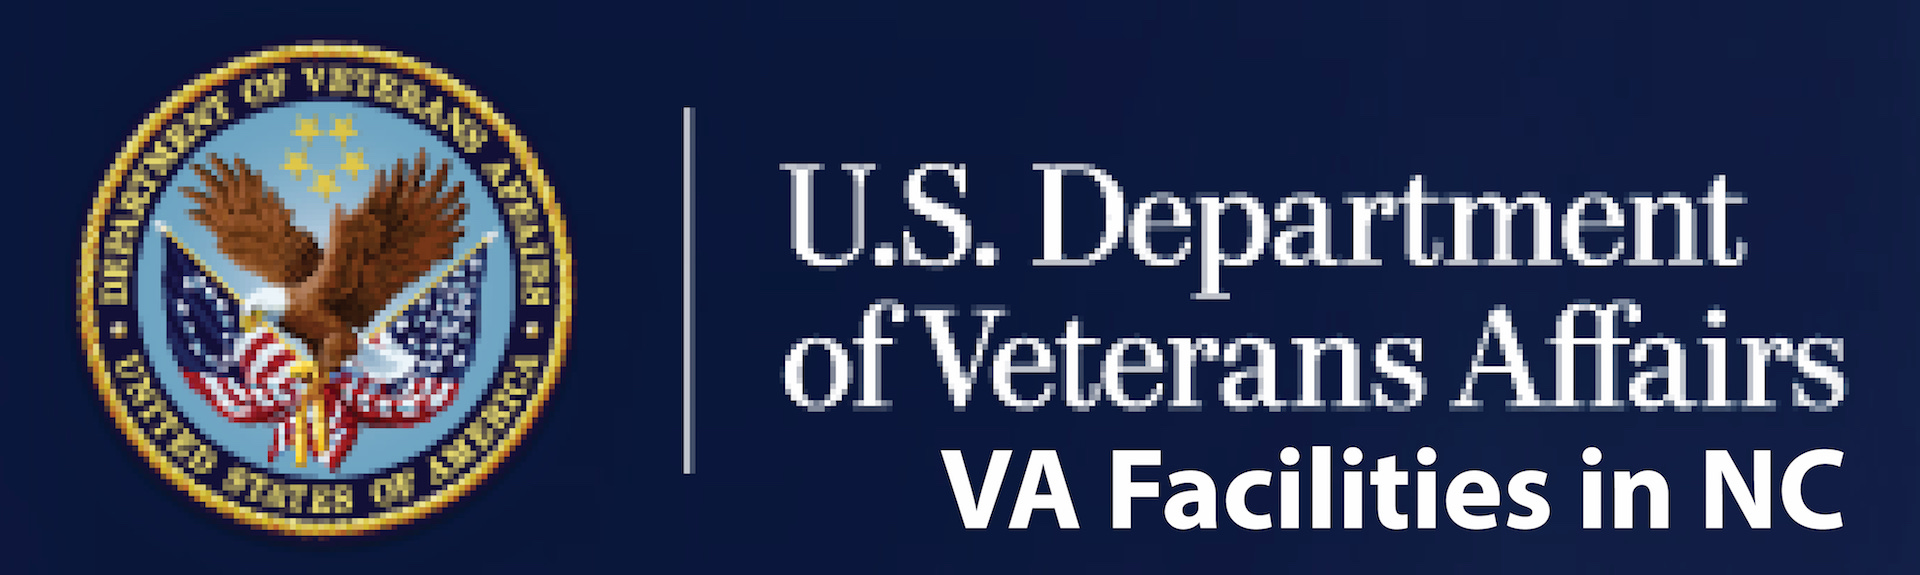 U.S. Department of Veterans Affair: VA Facilities in NC logo